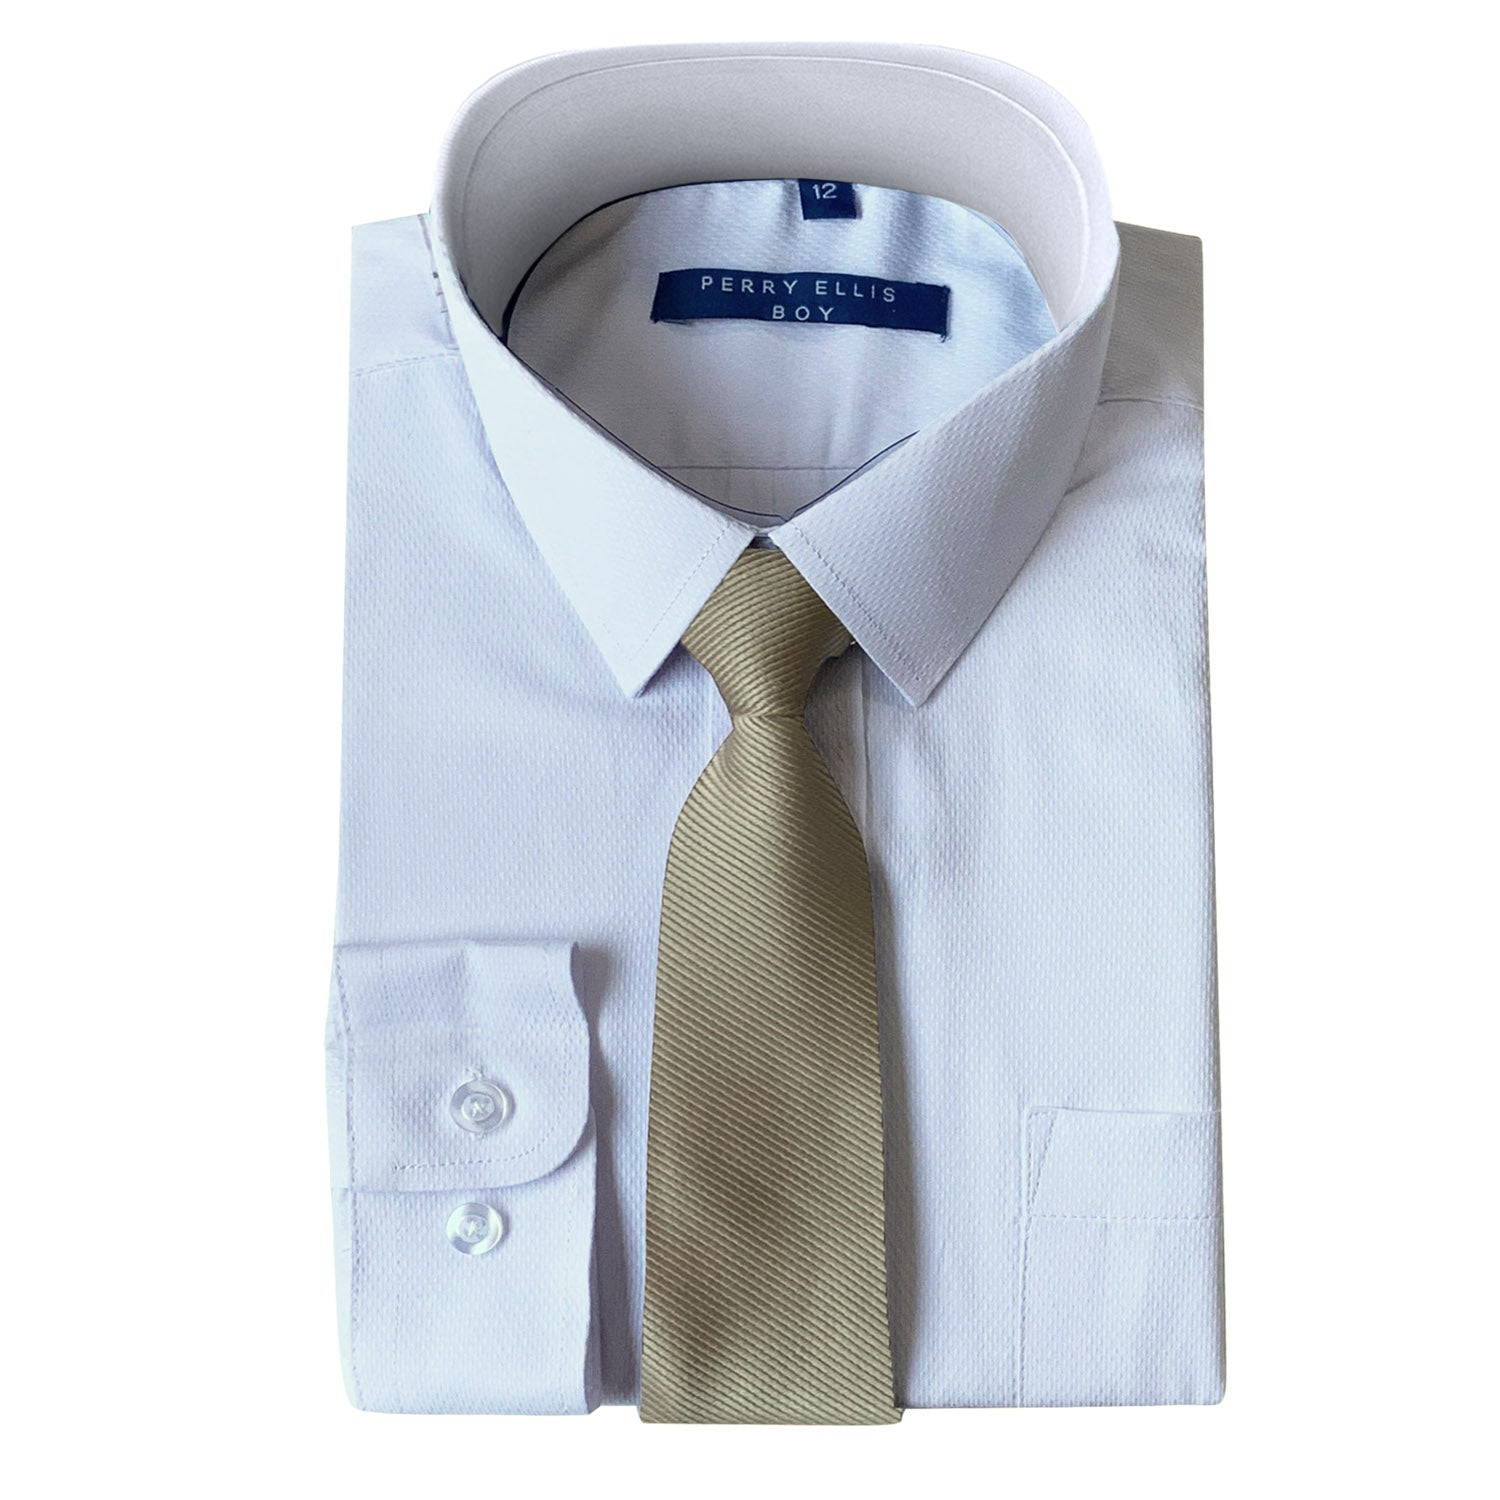 Perry Ellis Boys Dress Shirts w Tan Tie Solid Shirts w Colored Tie